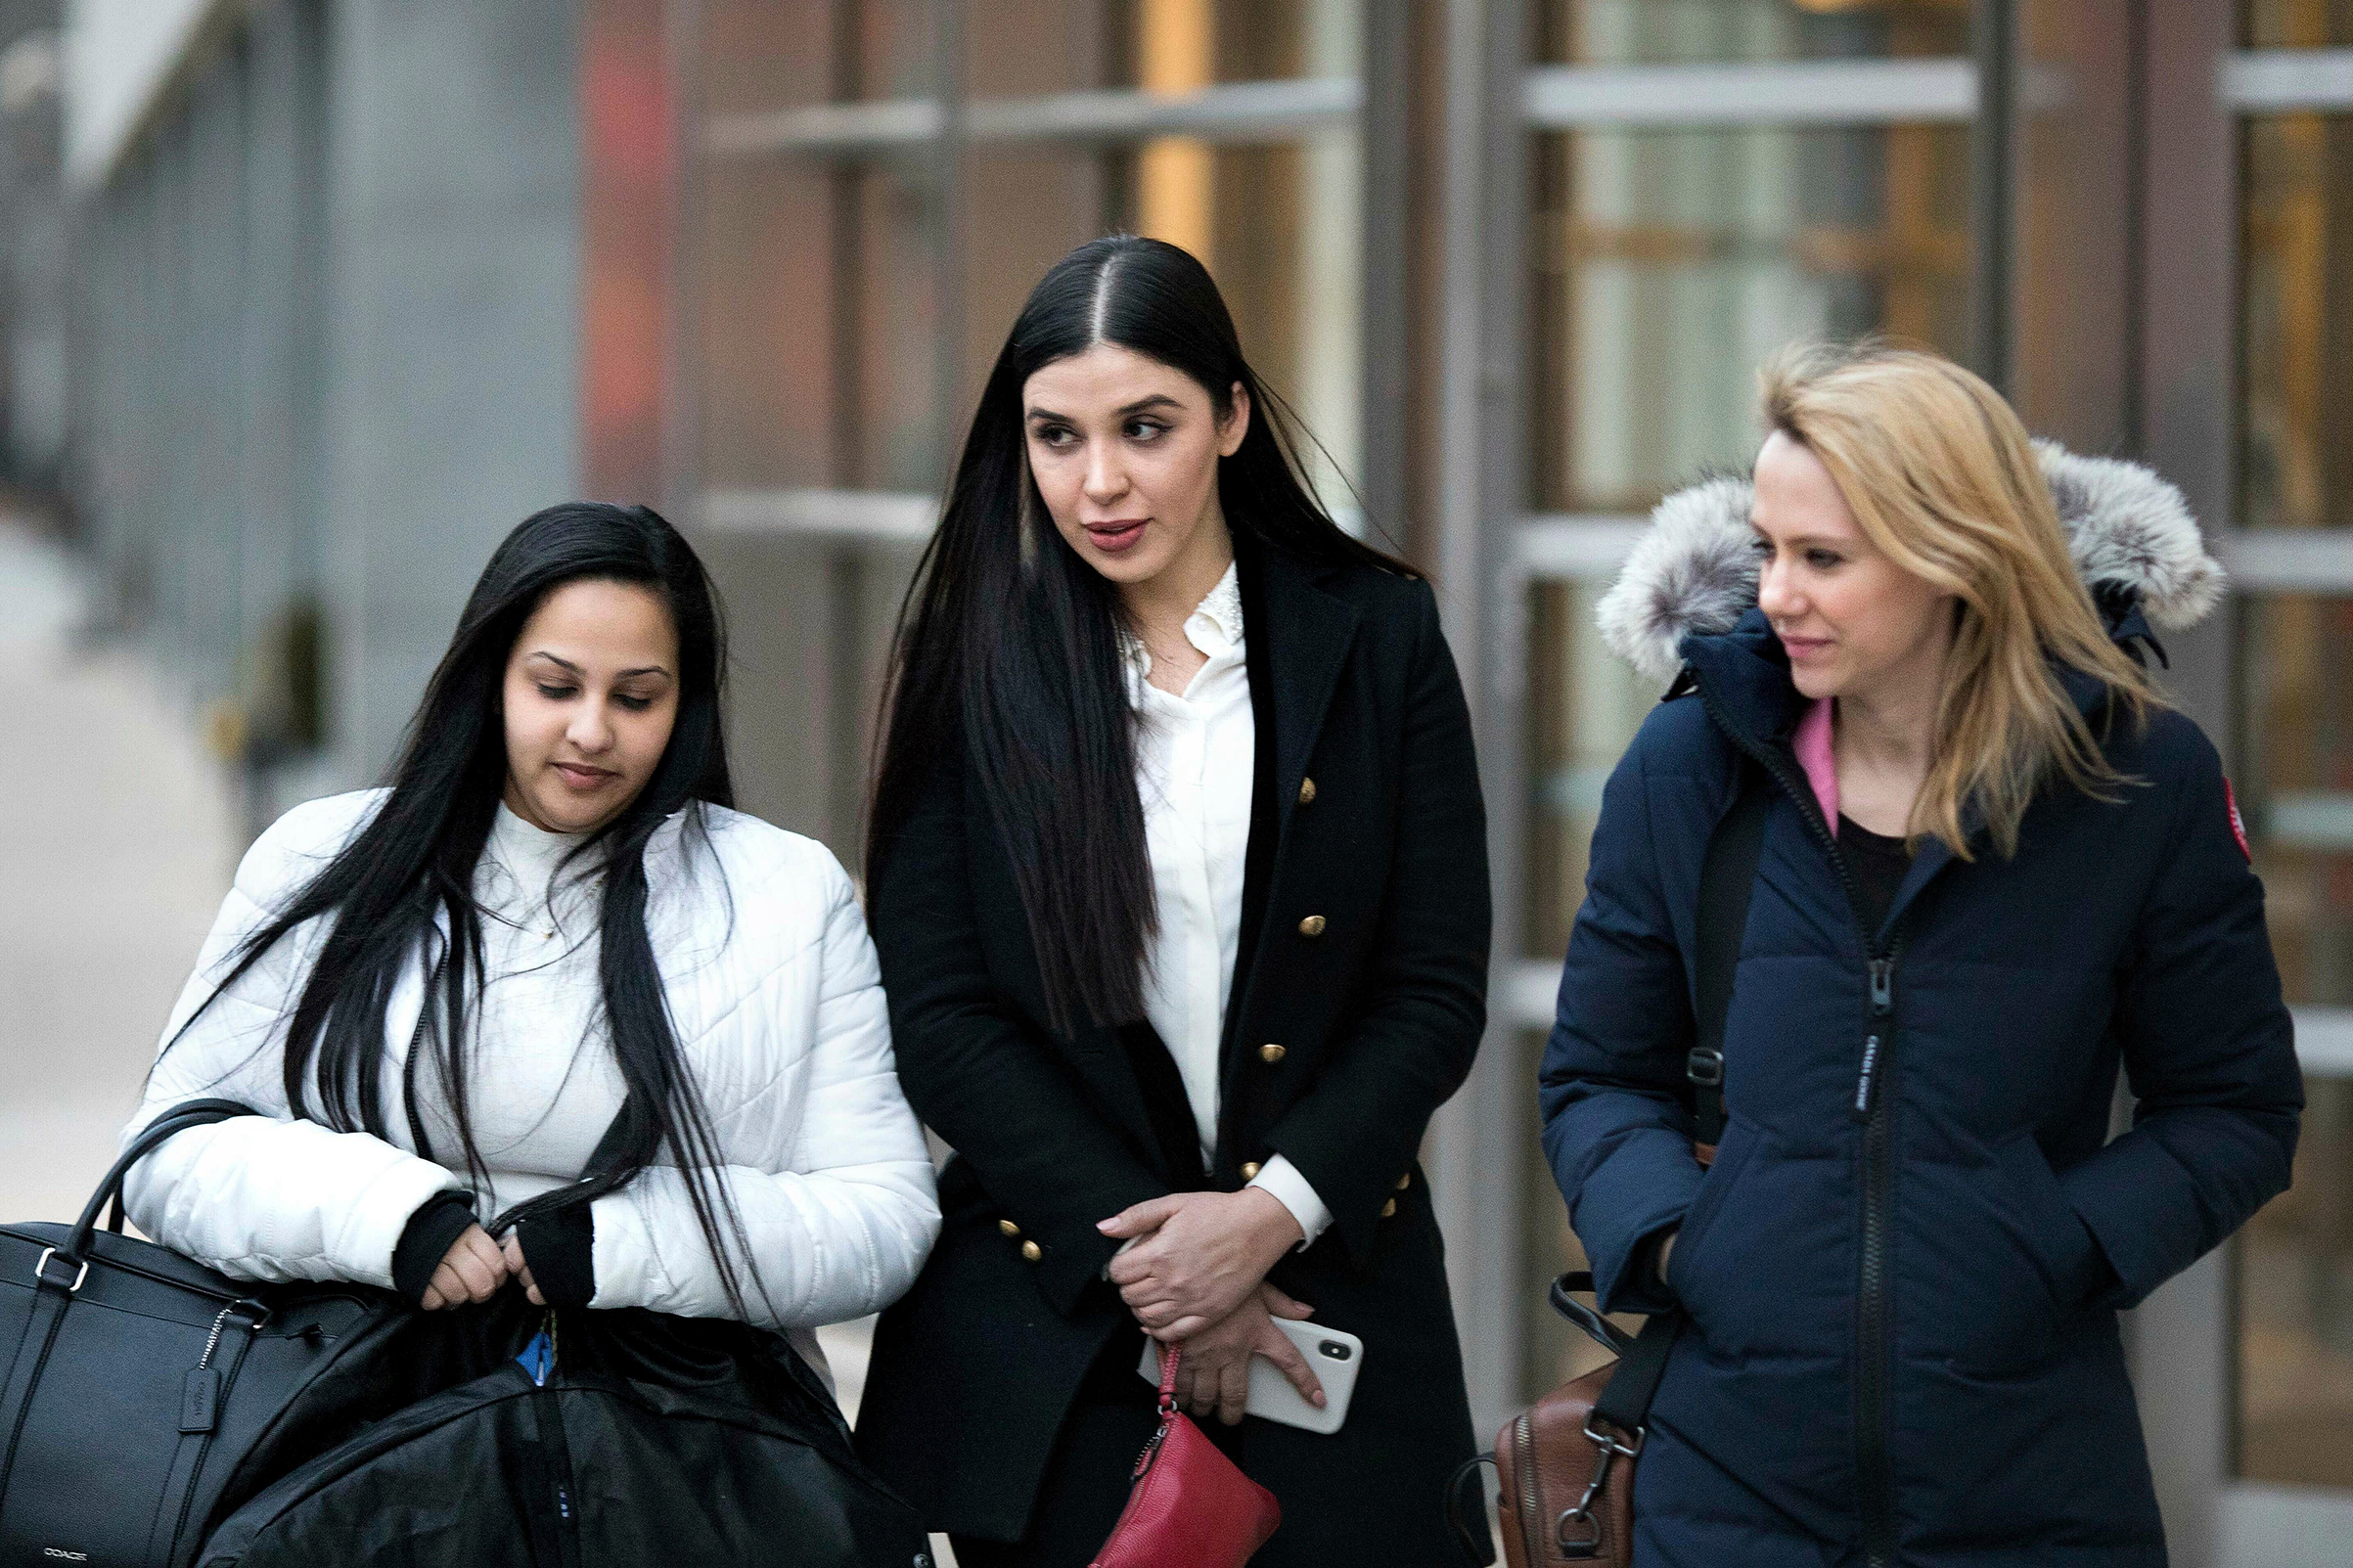 Emma Coronel Aispuro, center, leaves Brooklyn federal court, in New York, after attending the trial of her husband Joaquin  El Chapo  Guzman on Jan. 17, 2019.